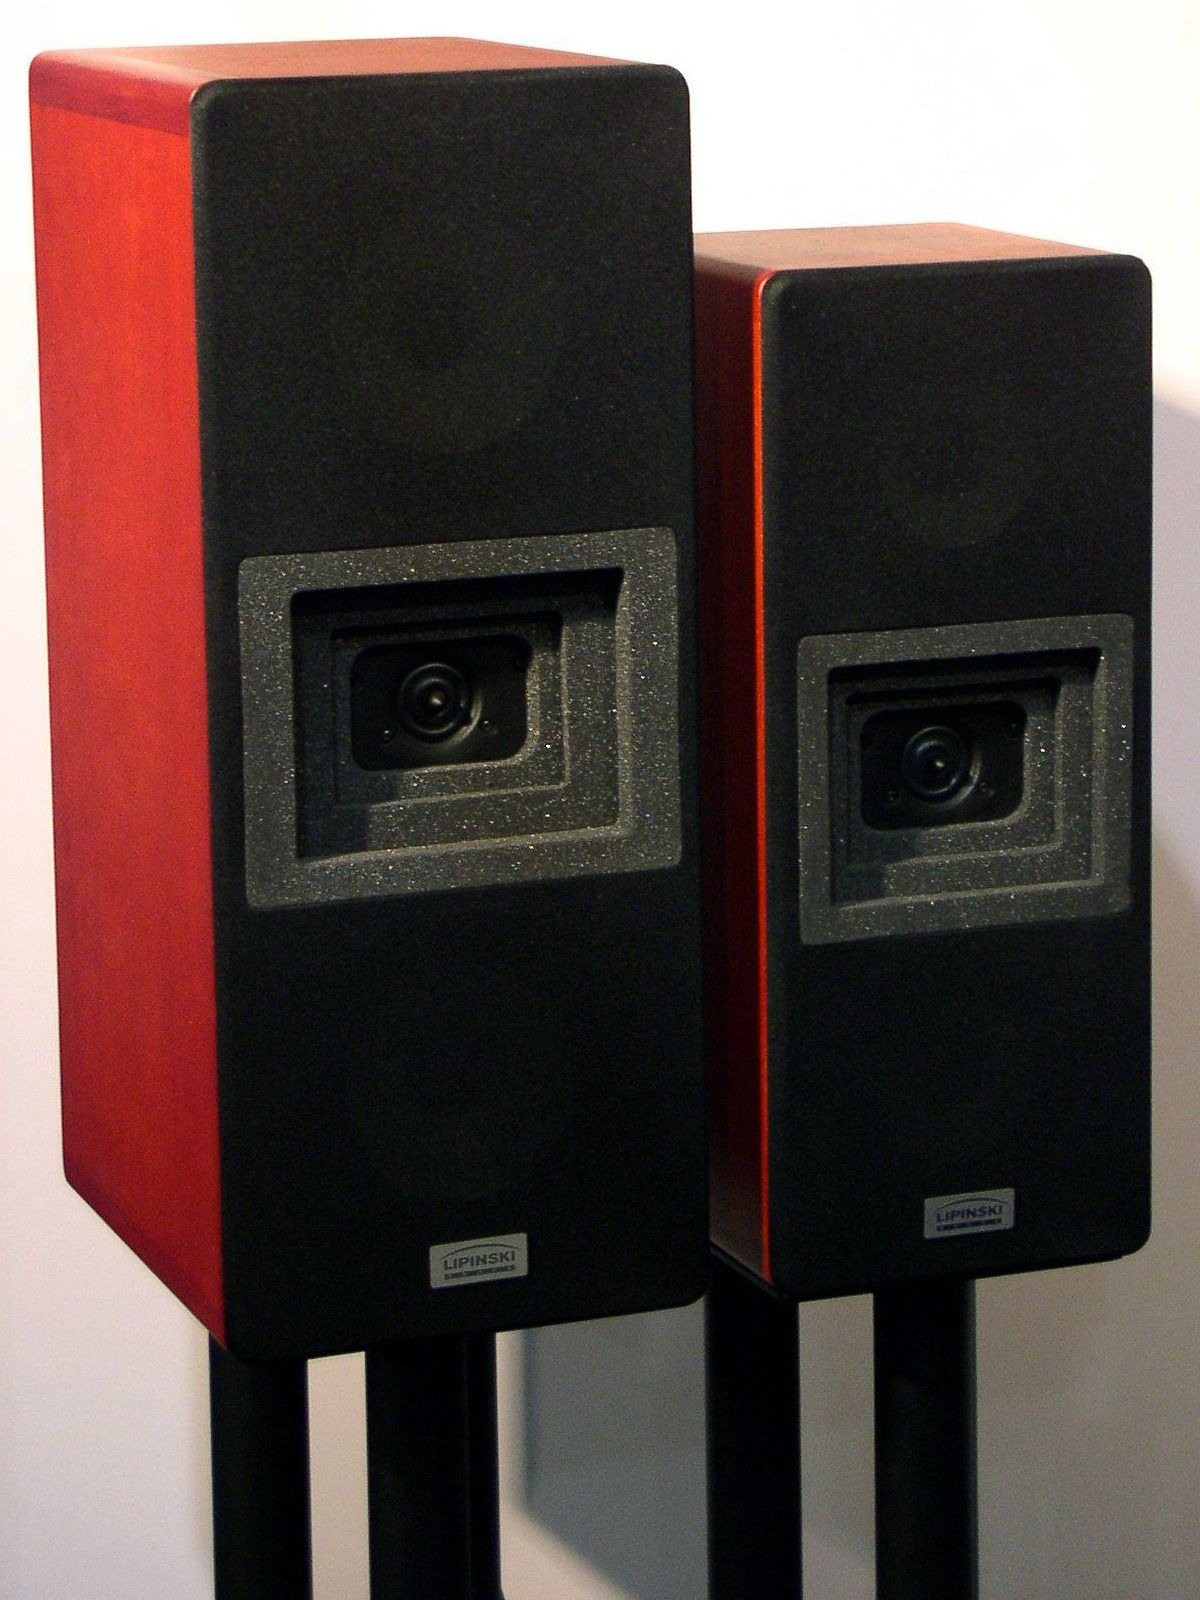 Select Speaker Stands For Appearance And Sound Quality